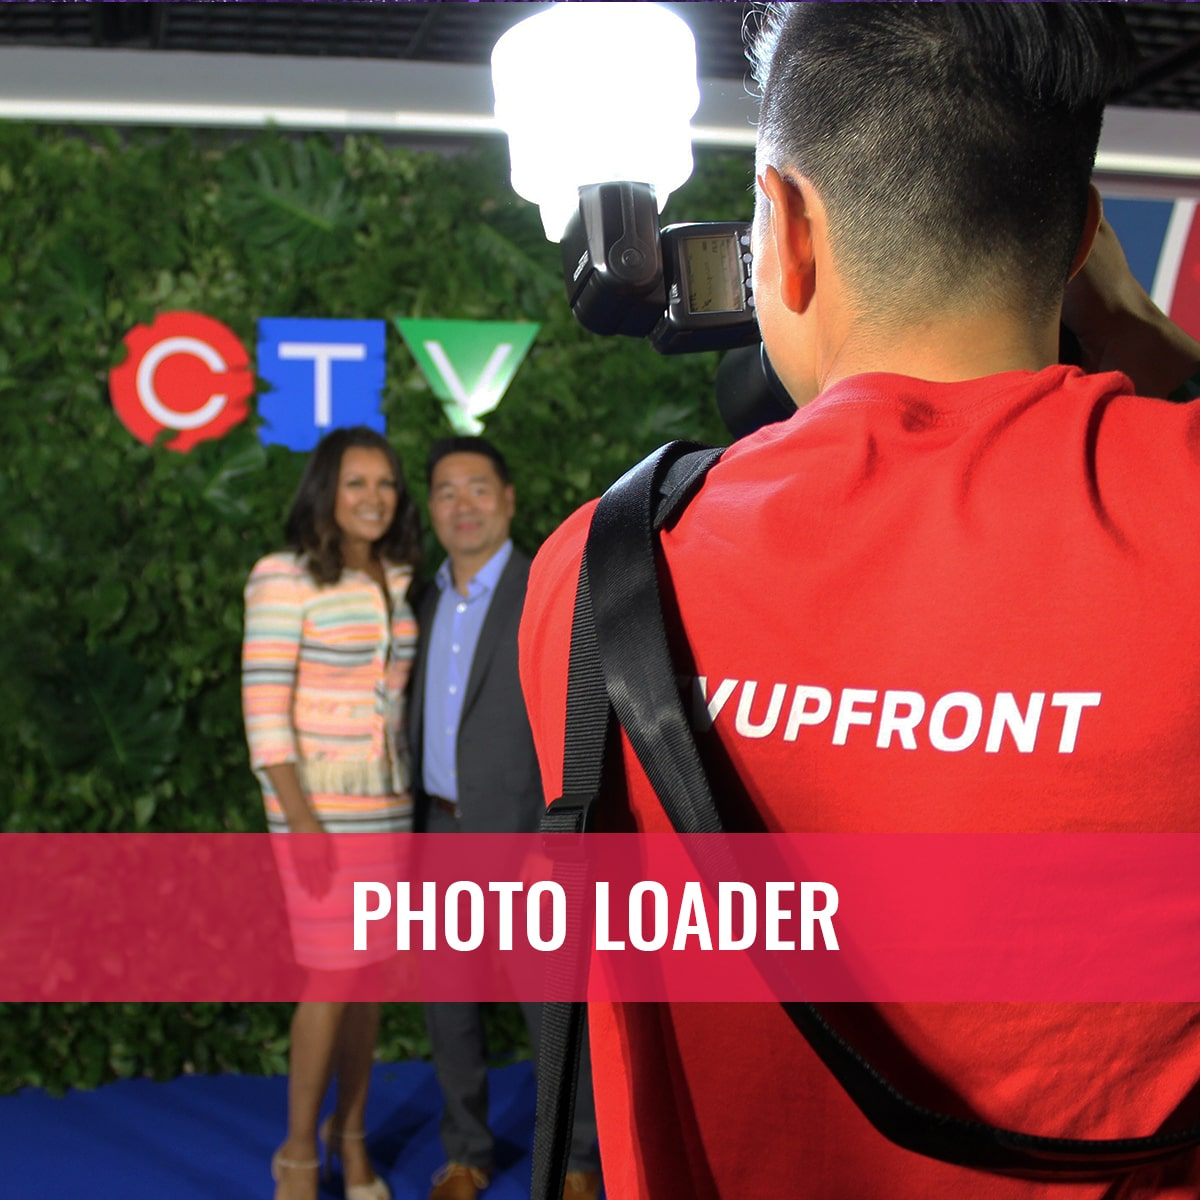 Photo Booth Rental Services ctv upfronts photo loader event photography